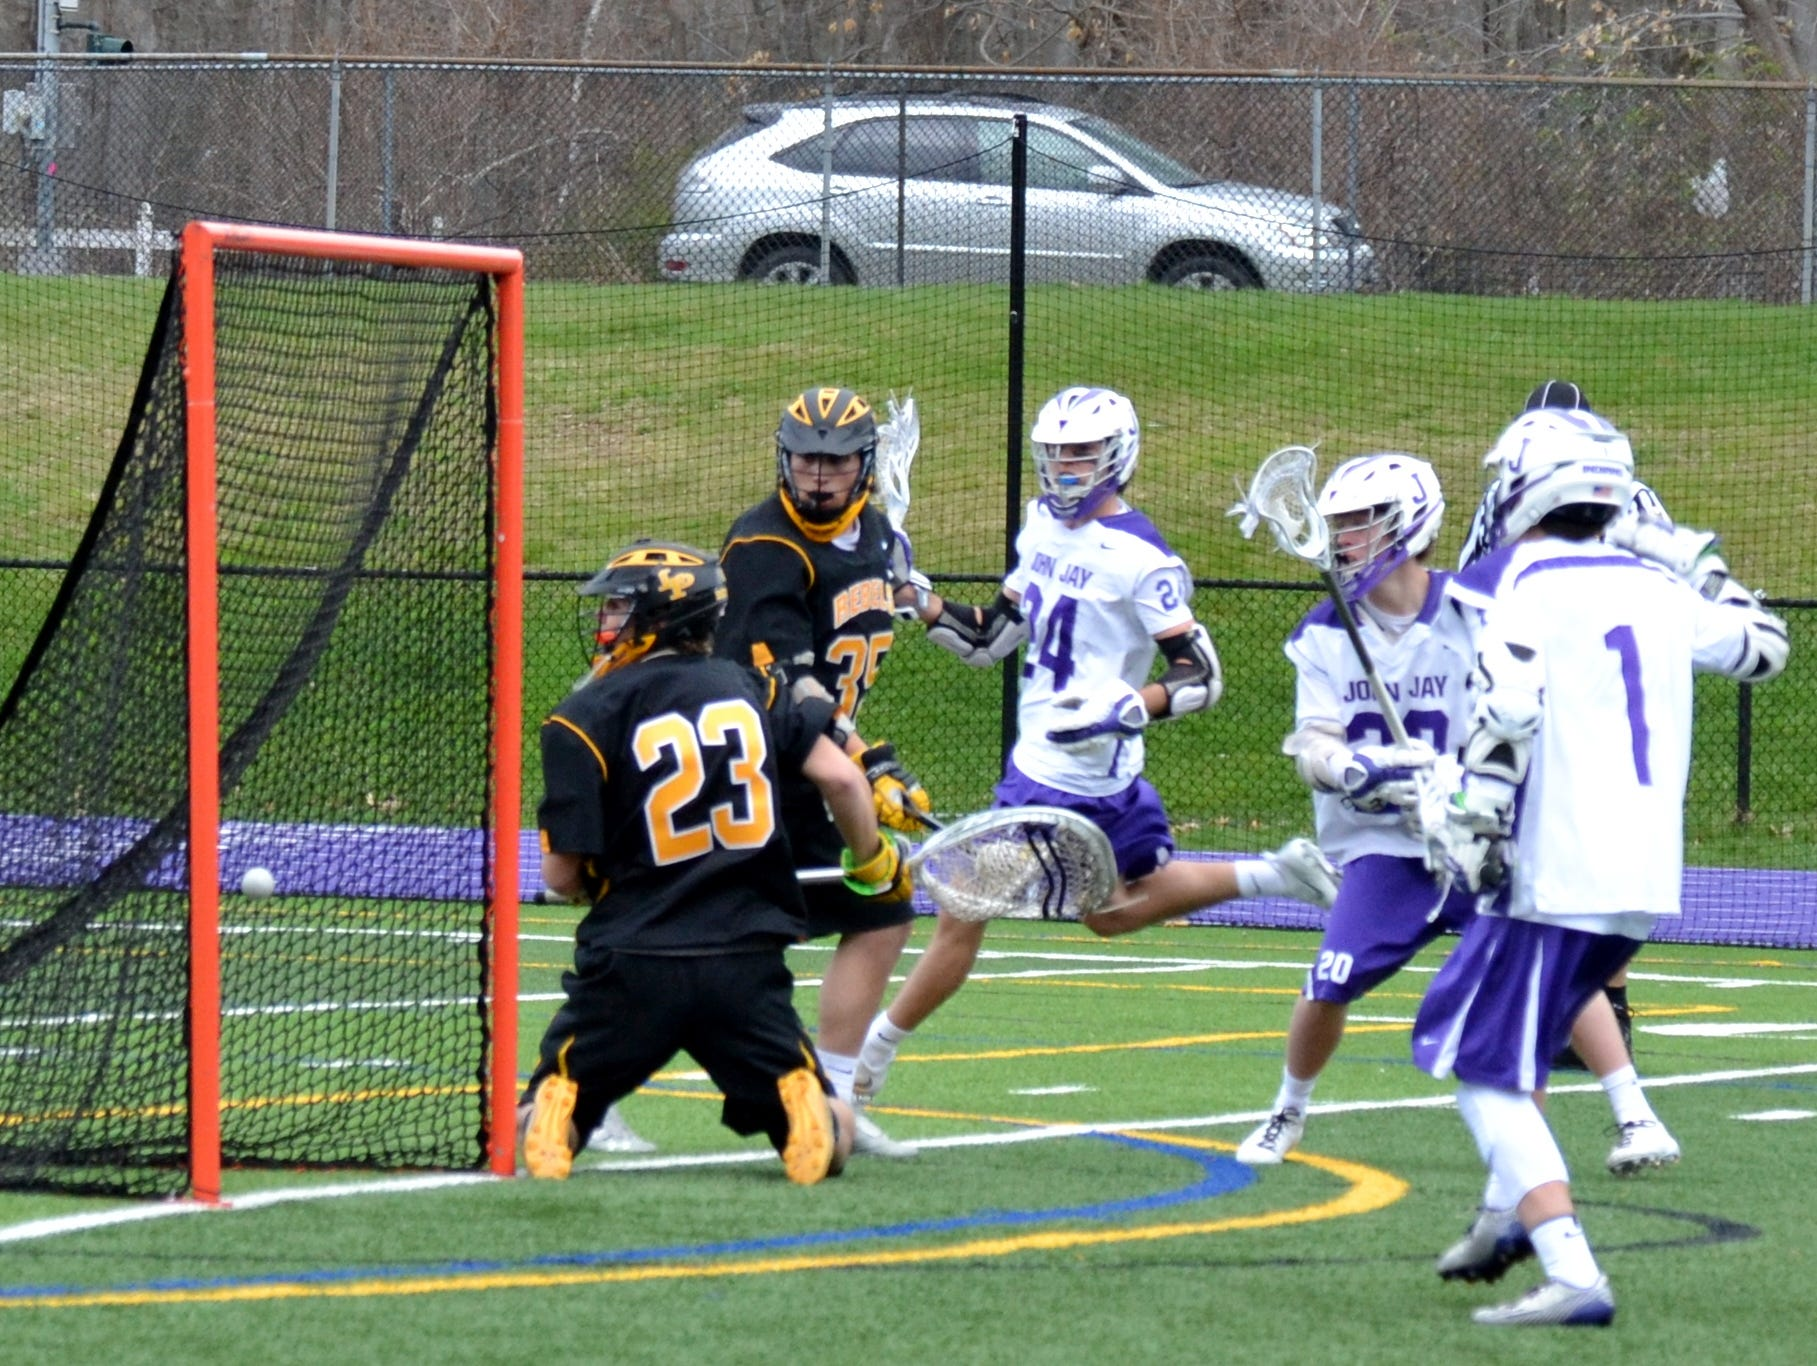 John Jay midfielder Gus Carlson (20) scores in the final minutes of regulation to give the Indians an 8-7 lead.